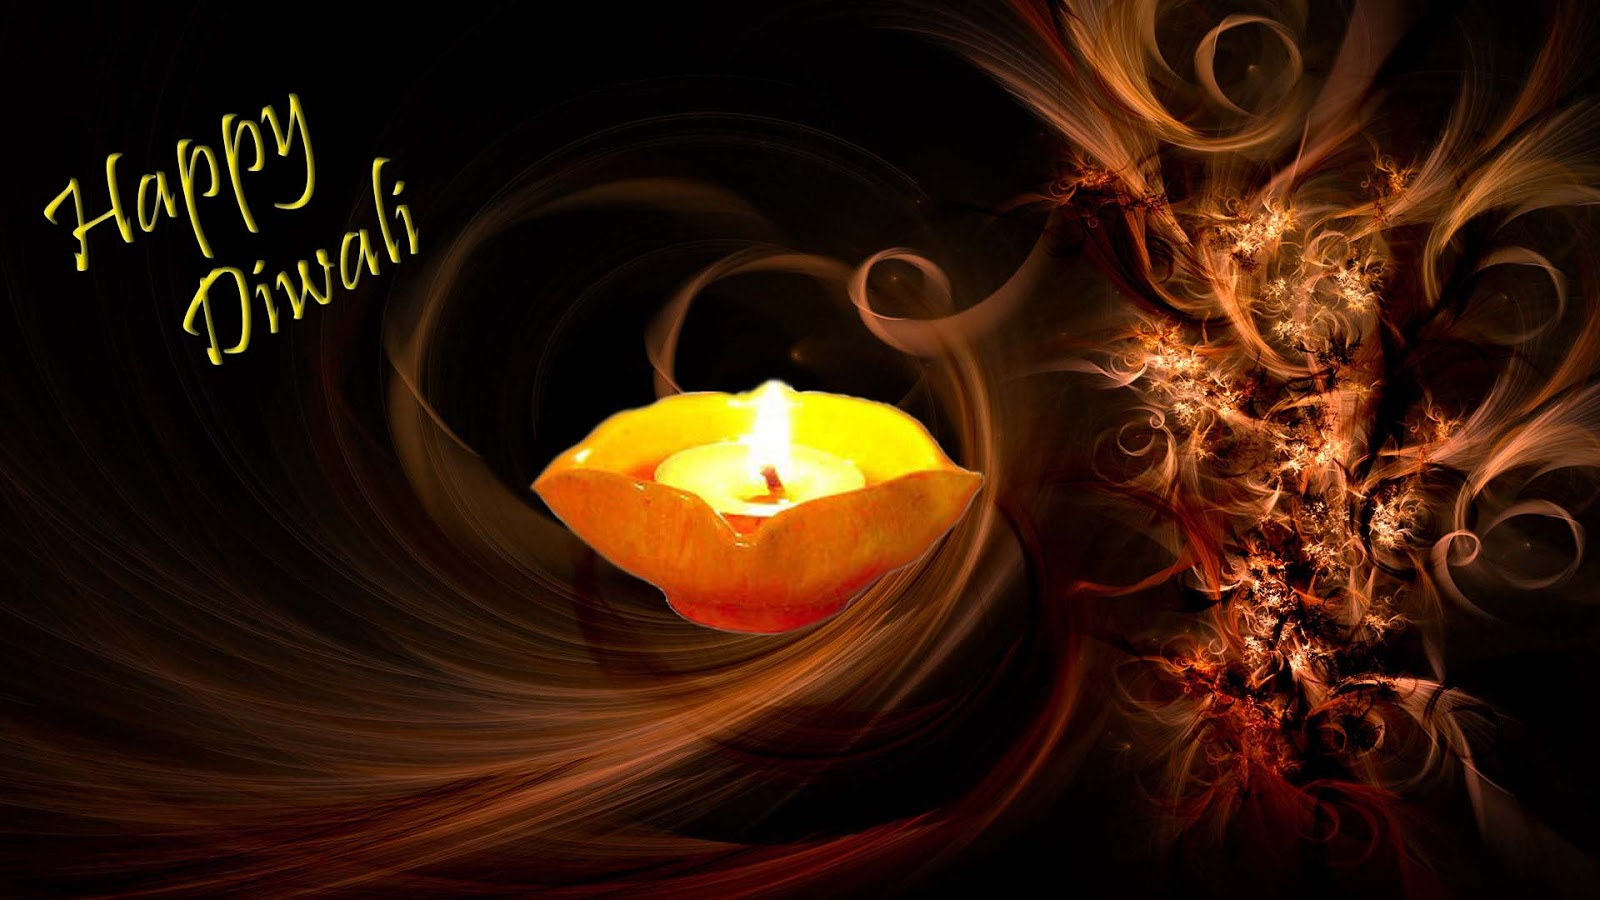 Diwali Holiday Deepak Wali Wishes Wall Papers Images